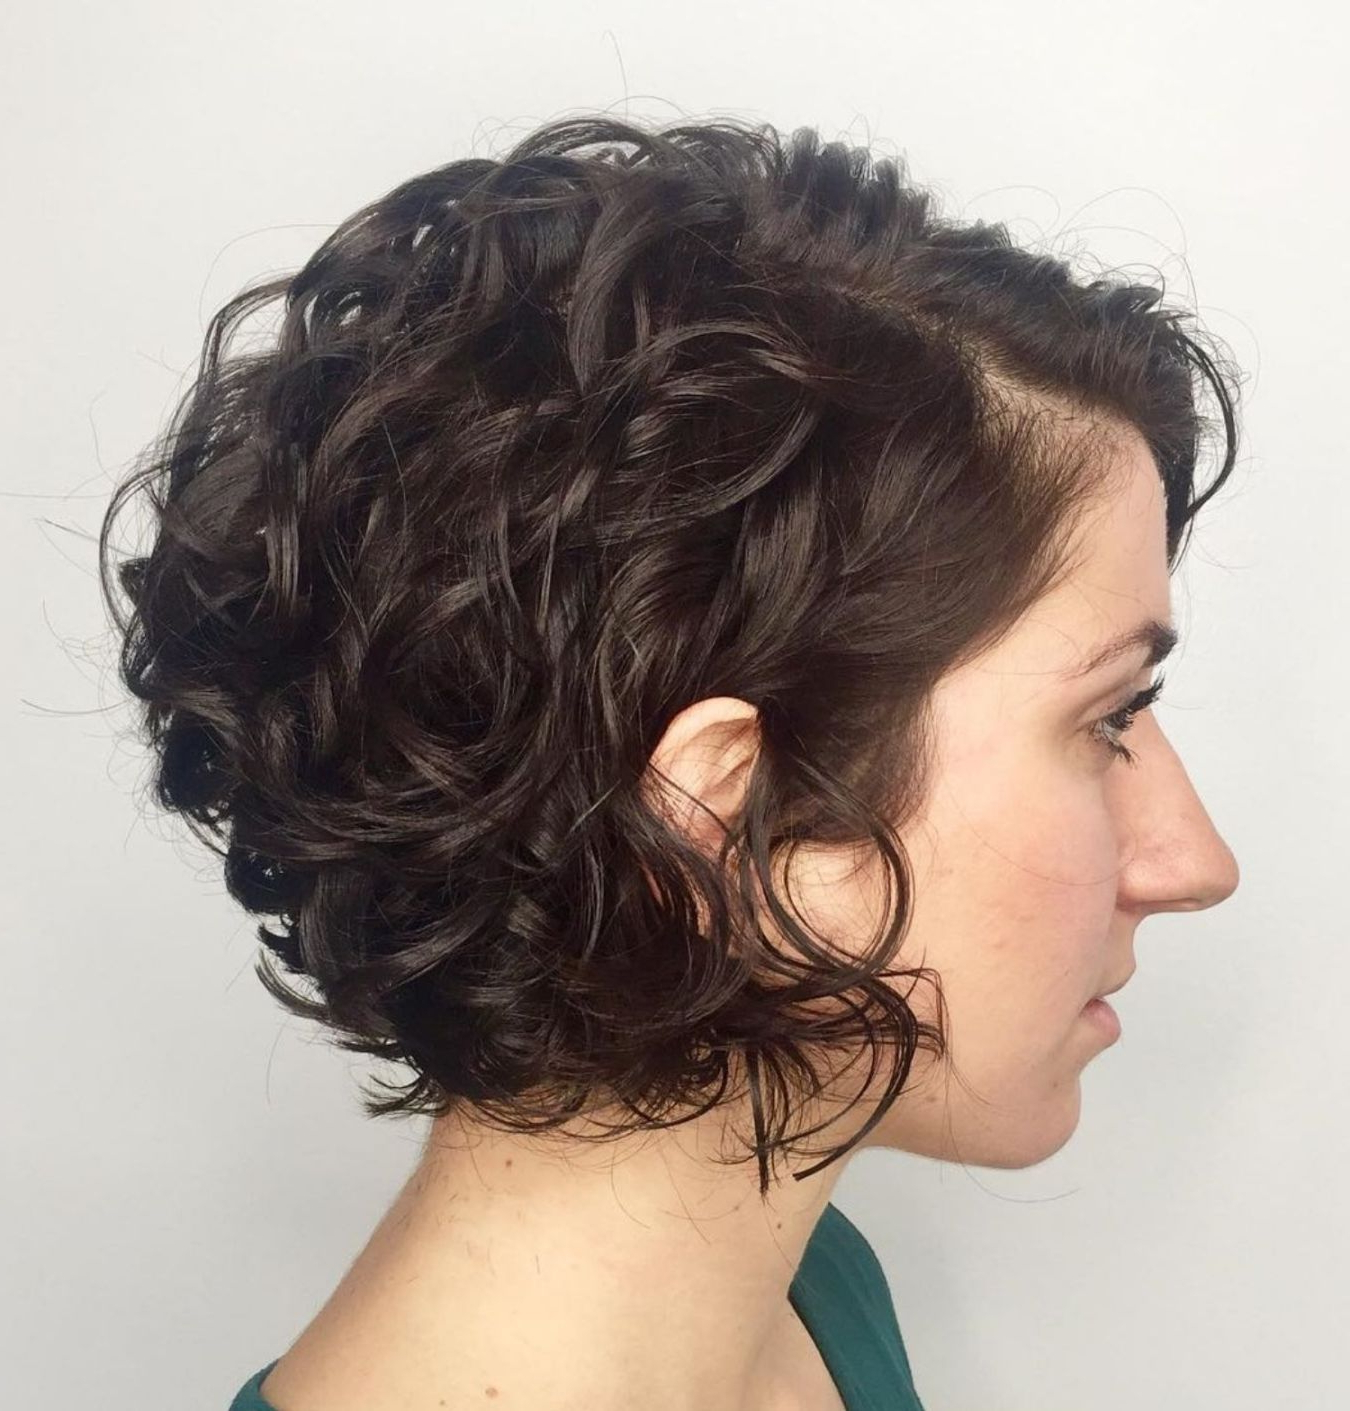 65 Different Versions Of Curly Bob Hairstyle In 2019 | Short With Regard To Simple Side Parted Jaw Length Bob Hairstyles (Gallery 6 of 20)